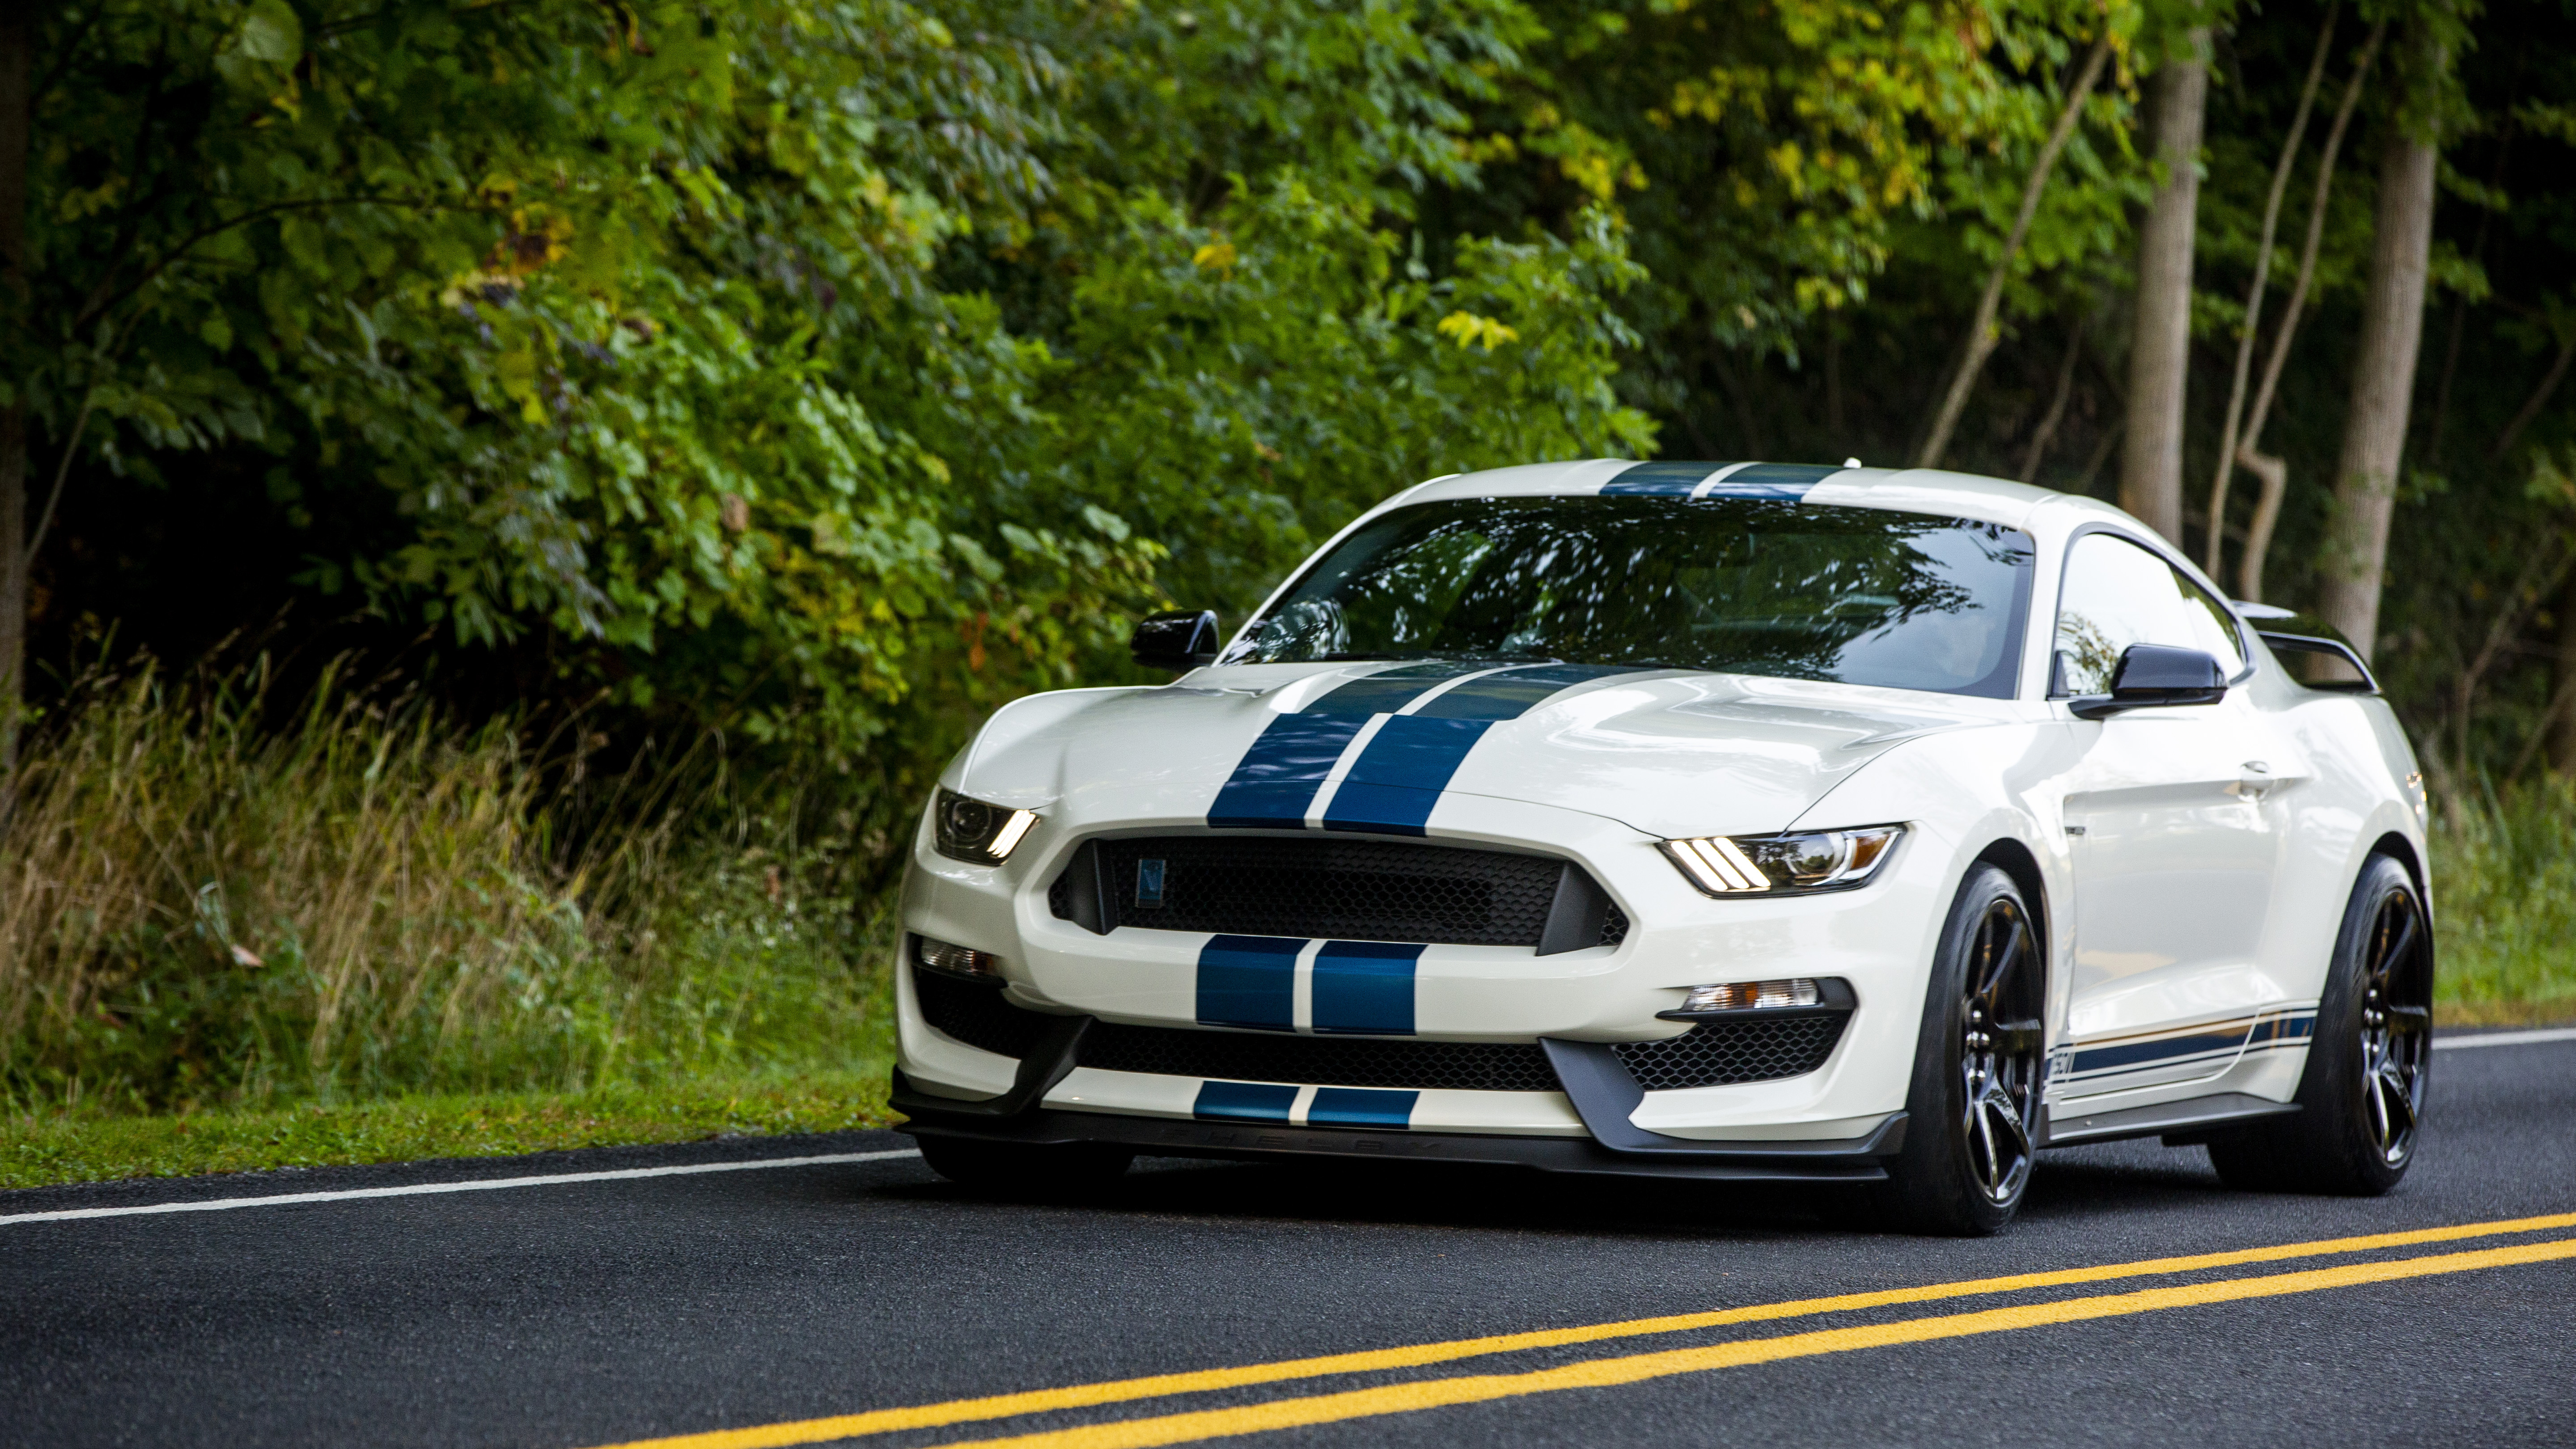 2020 Ford Mustang Shelby GT350R Heritage Edition -- Image Credit: Ford